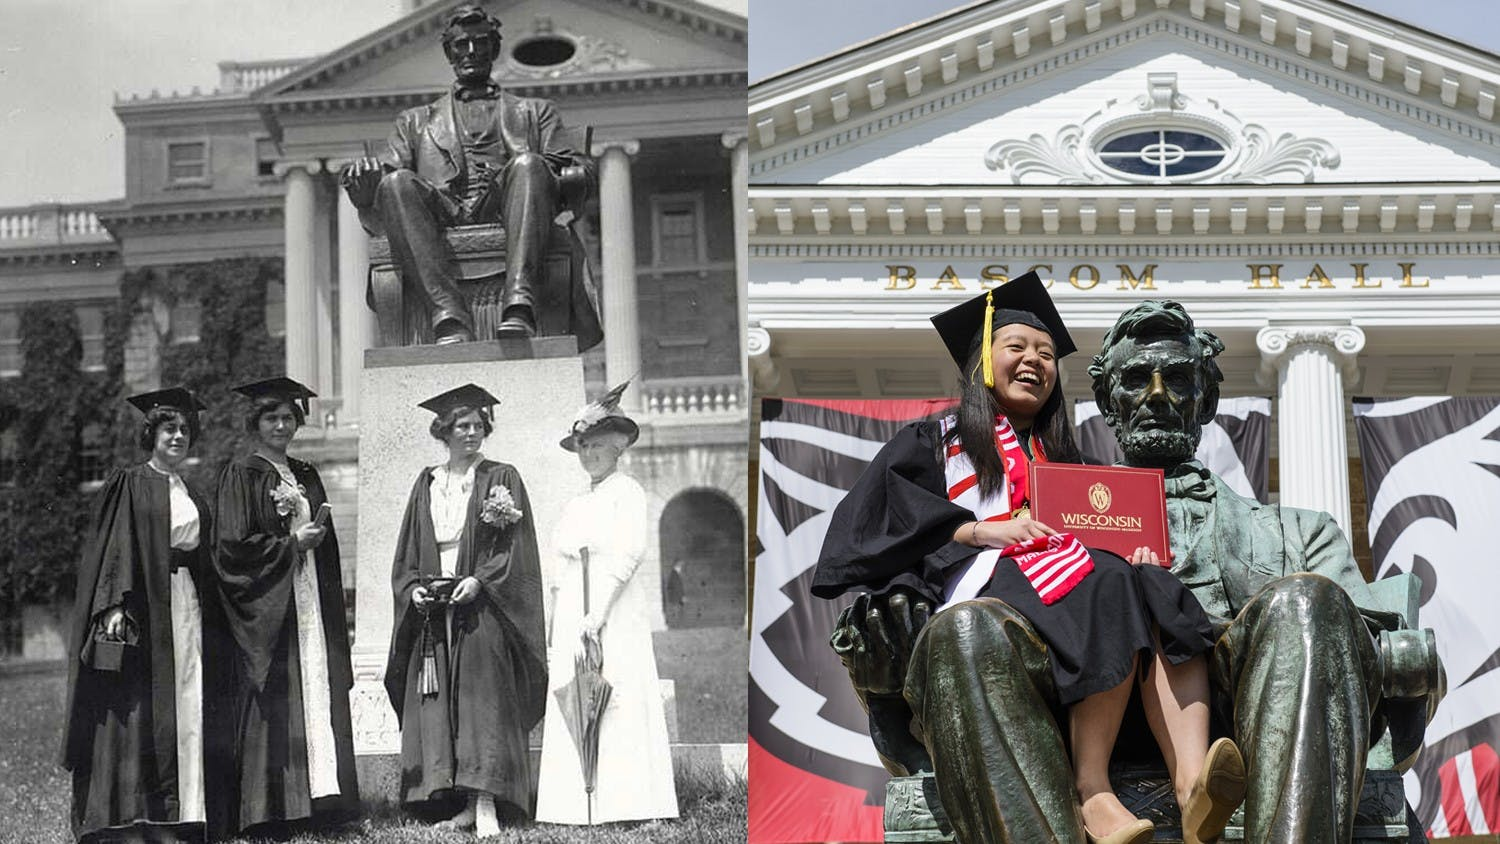 A side by side comparison of women graduates historically and in front of Bascom.